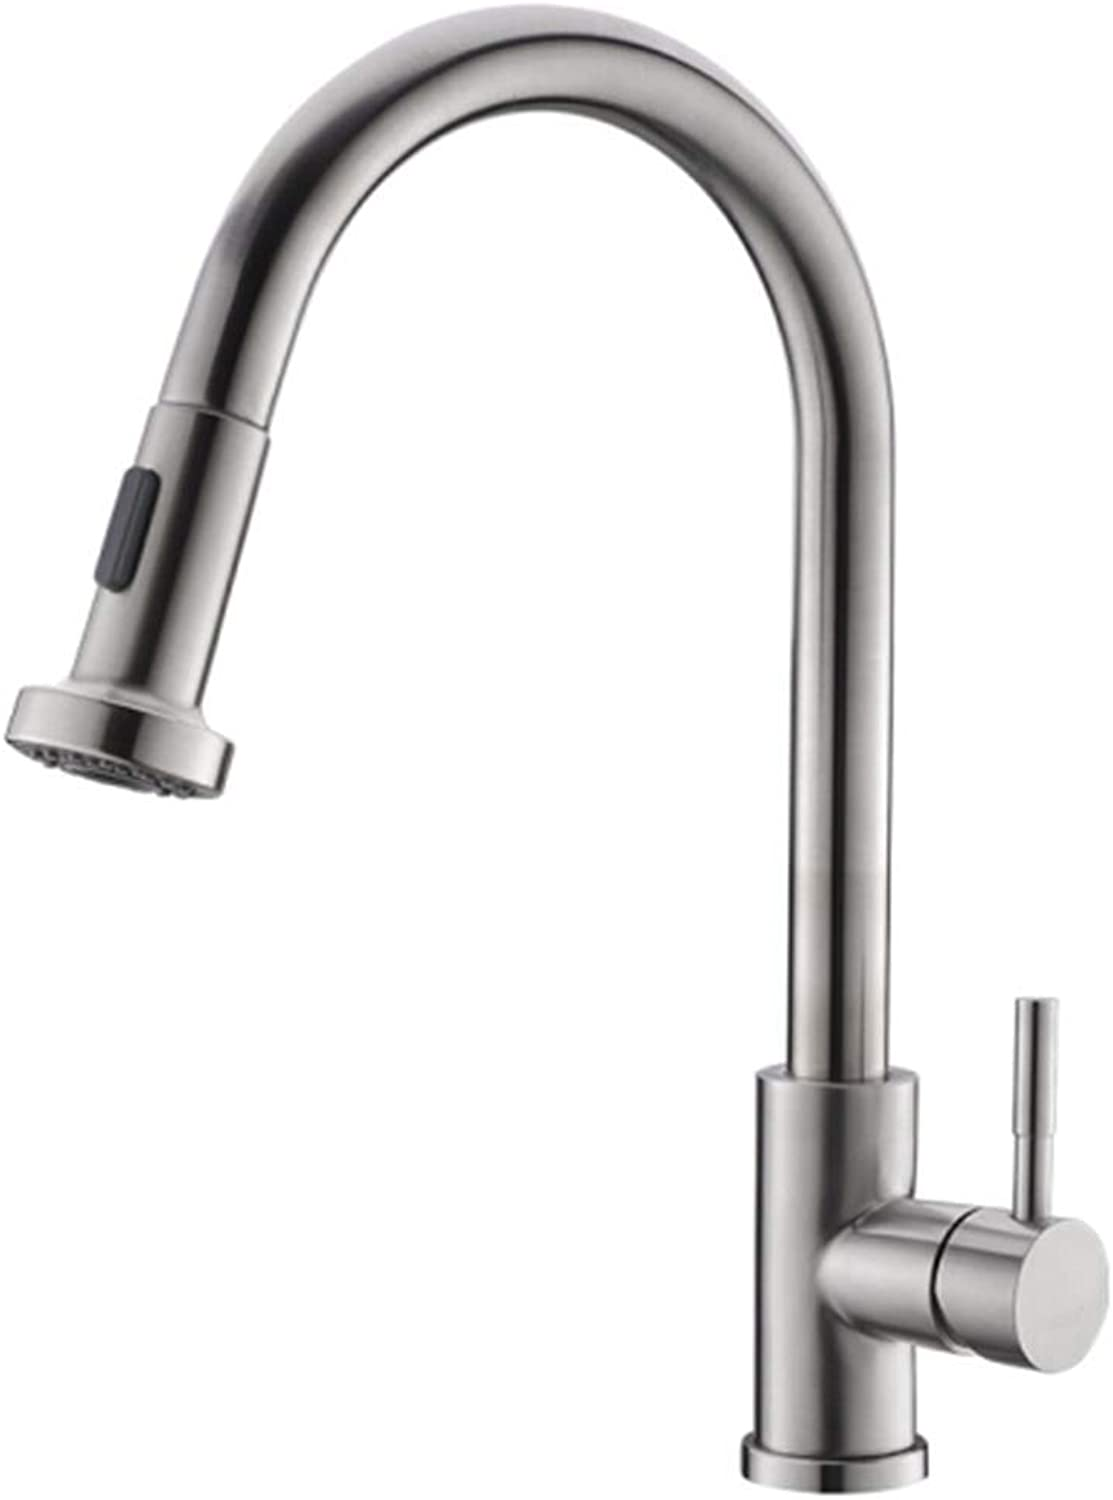 Kitchen Faucet Tapstainless Steelkitchen Faucet Propull Kitchen Faucet, Wash Basin, Hot and Cold Water Faucet 304 Stainless Steel.